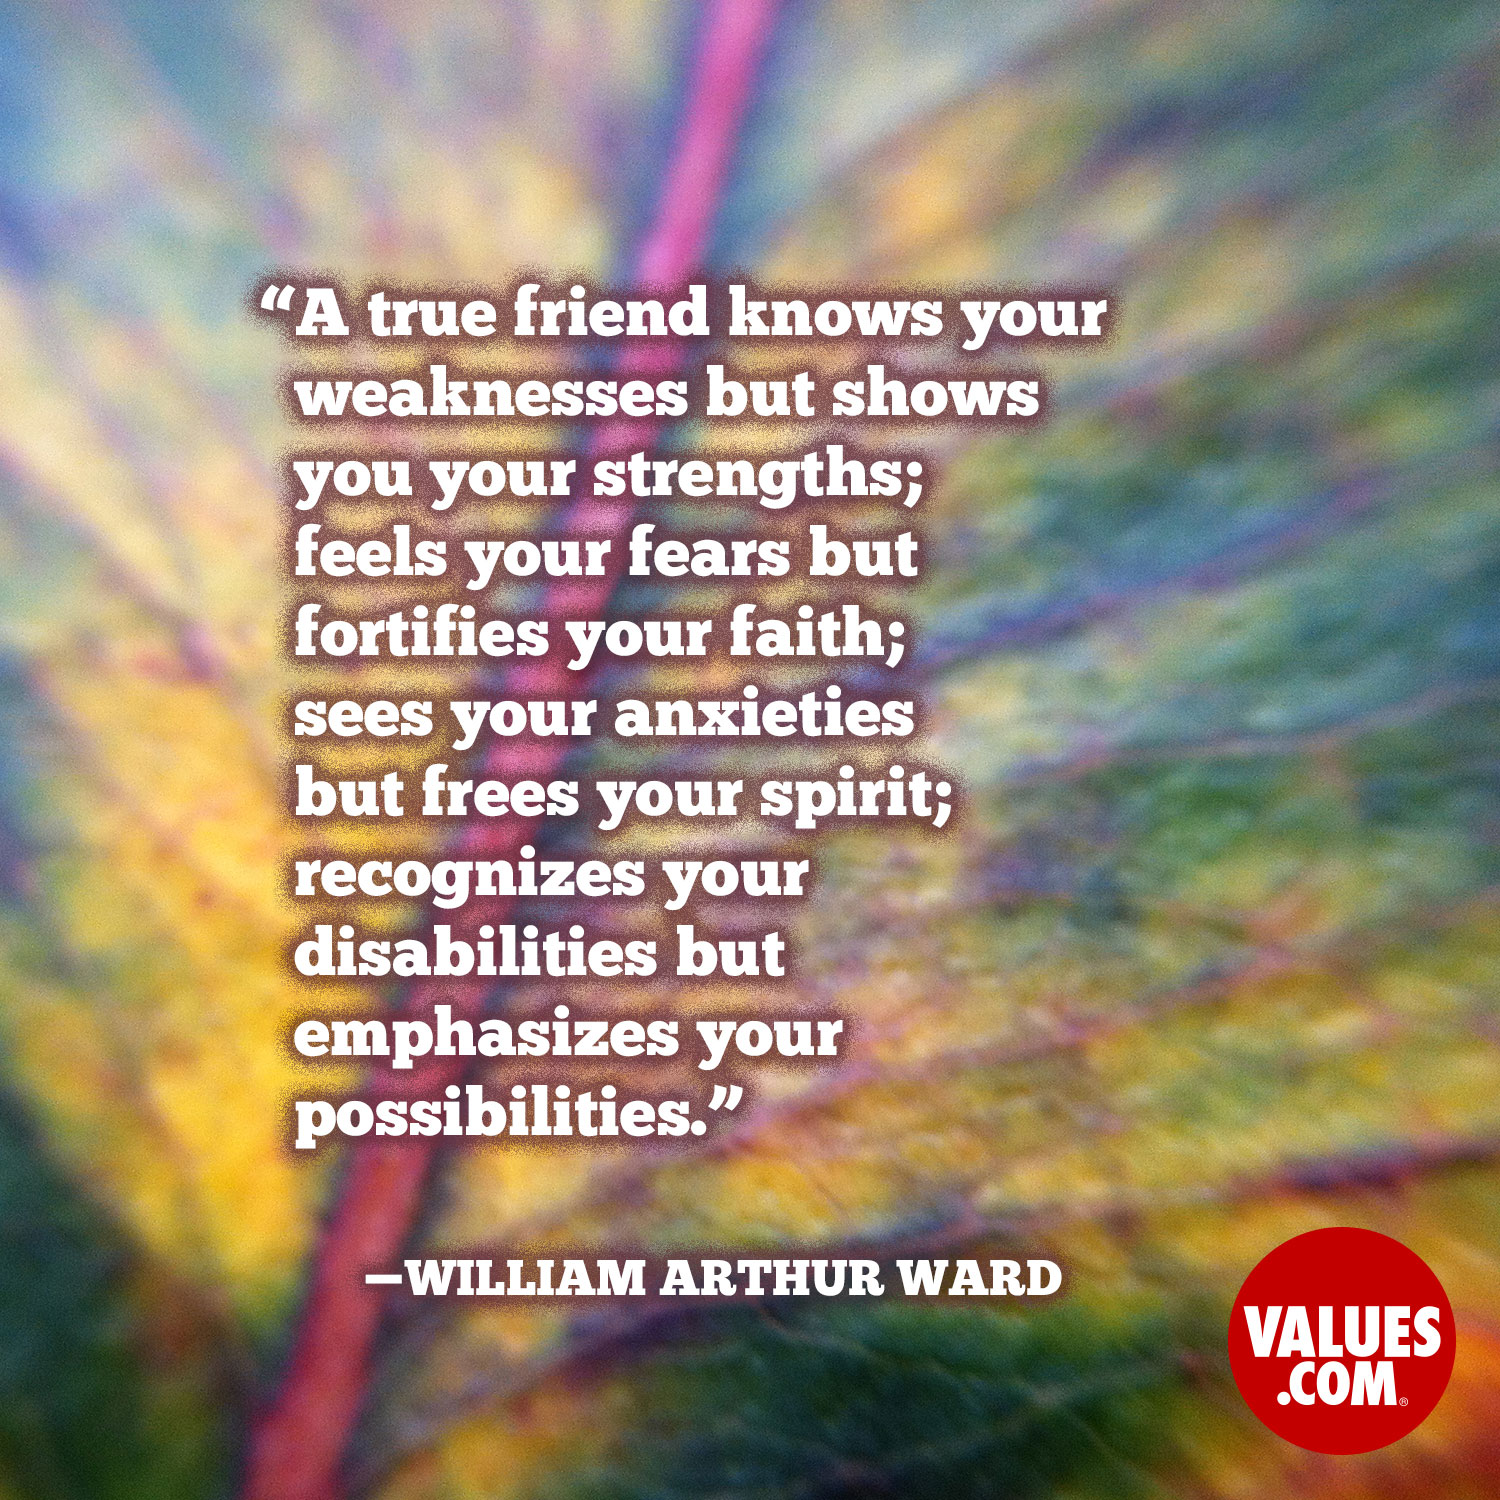 A true friend knows your weaknesses but shows you your strengths; feels your fears but fortifies your faith; sees your anxieties but frees your spirit; recognizes your disabilities but emphasizes your possibilities. —William Arthur Ward